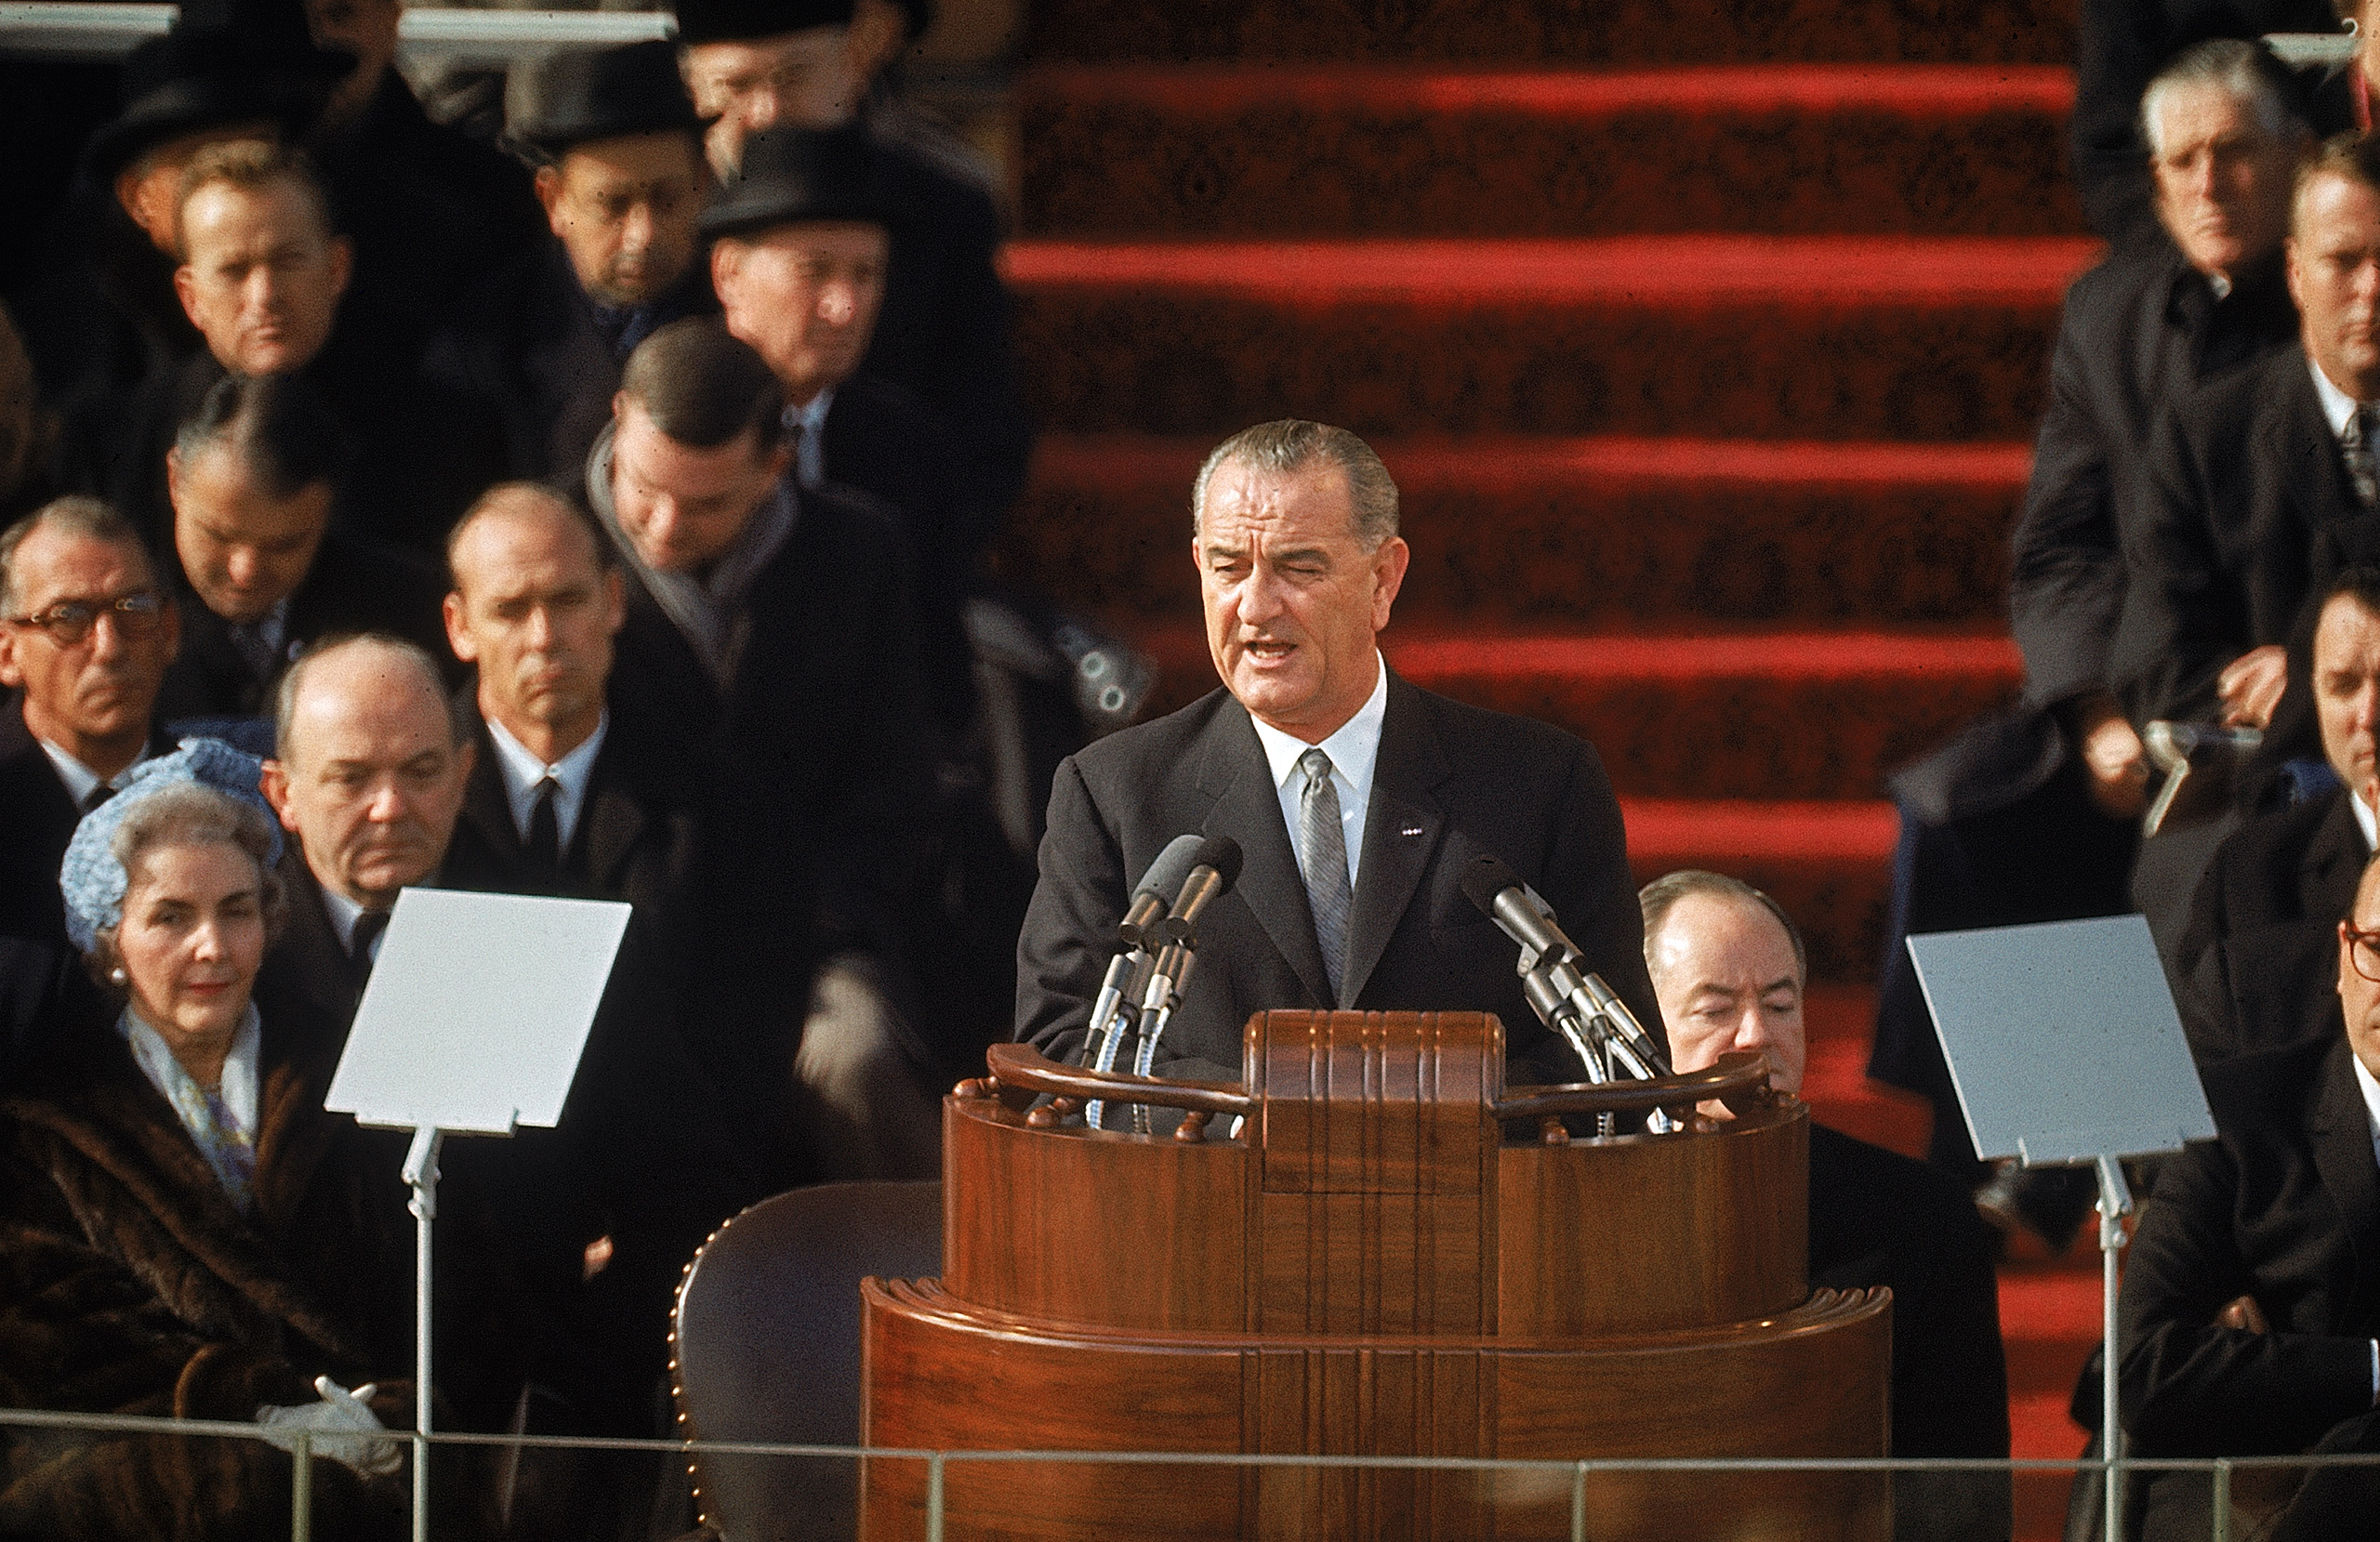 President Lyndon Johnson speaking at his second inauguration, 1965